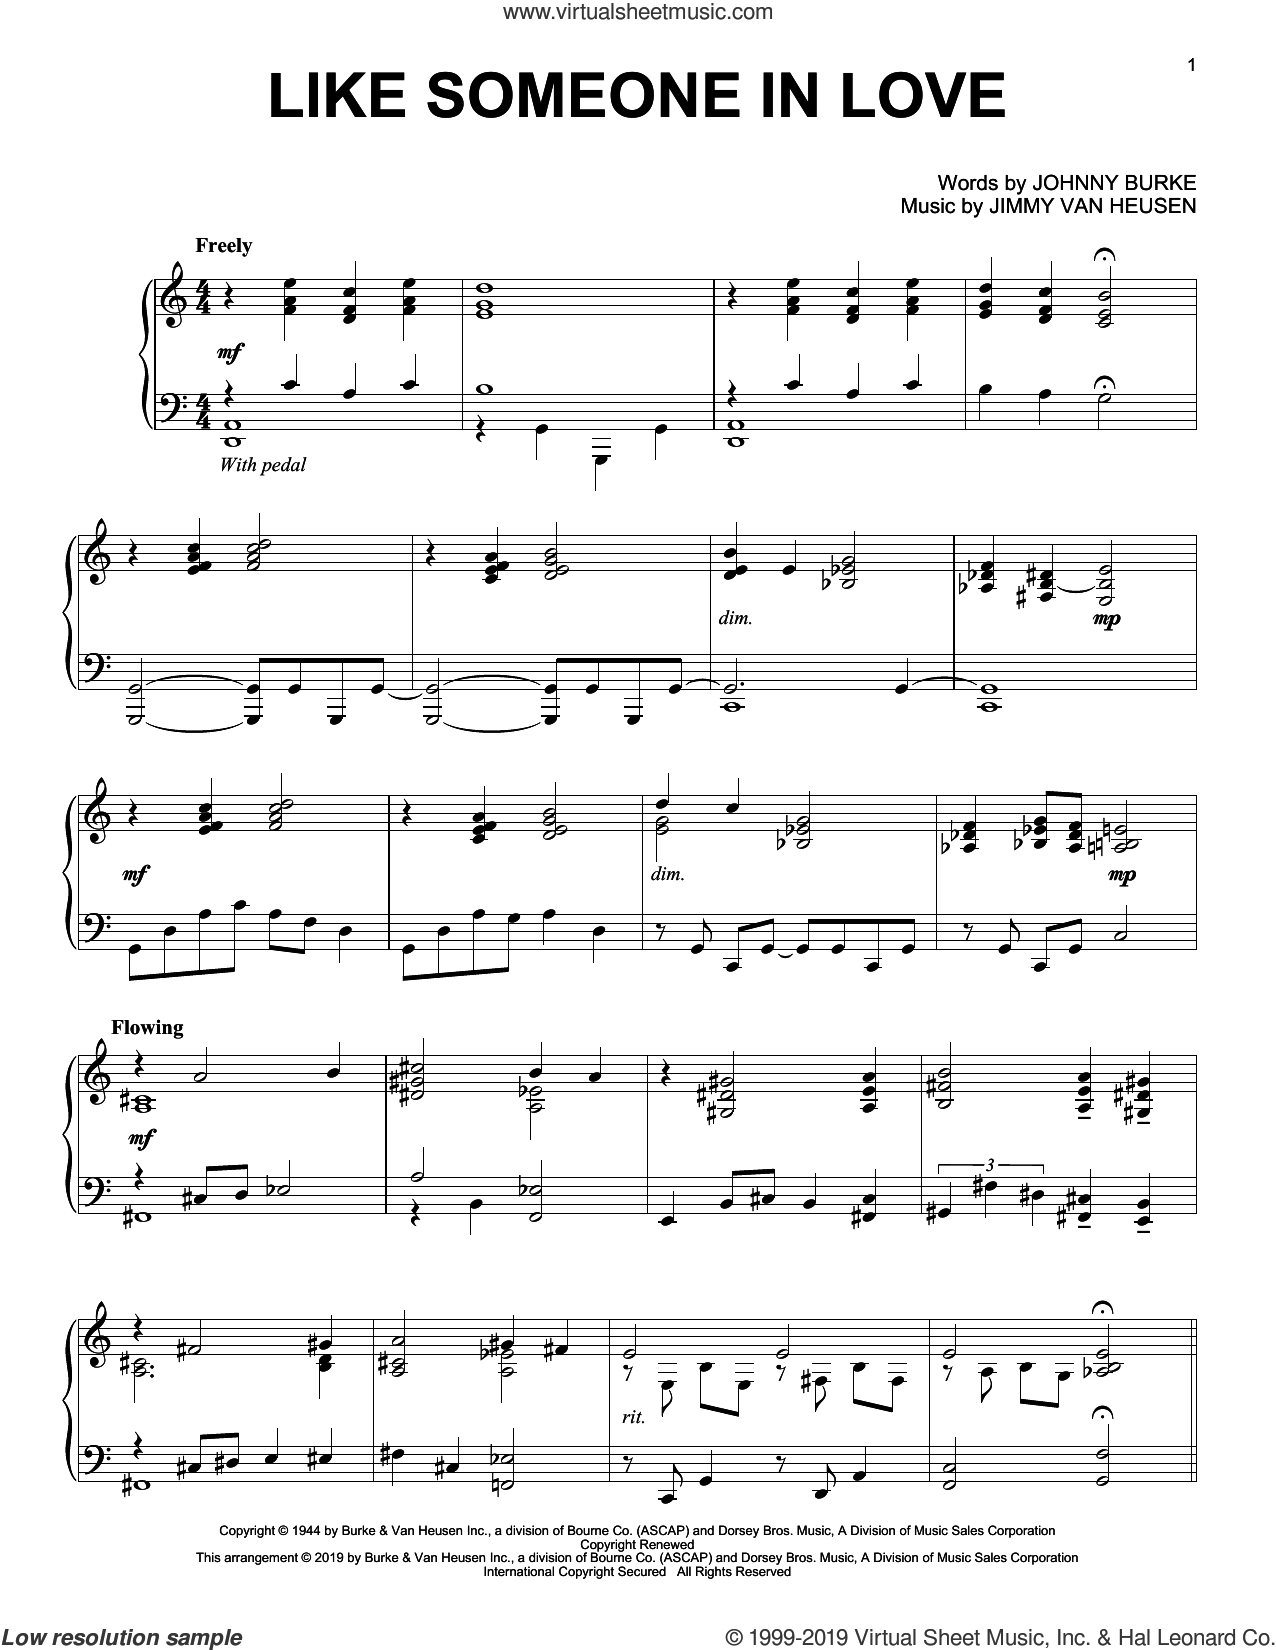 Like Someone In Love sheet music for piano solo by Jimmy Van Heusen and John Burke, intermediate skill level